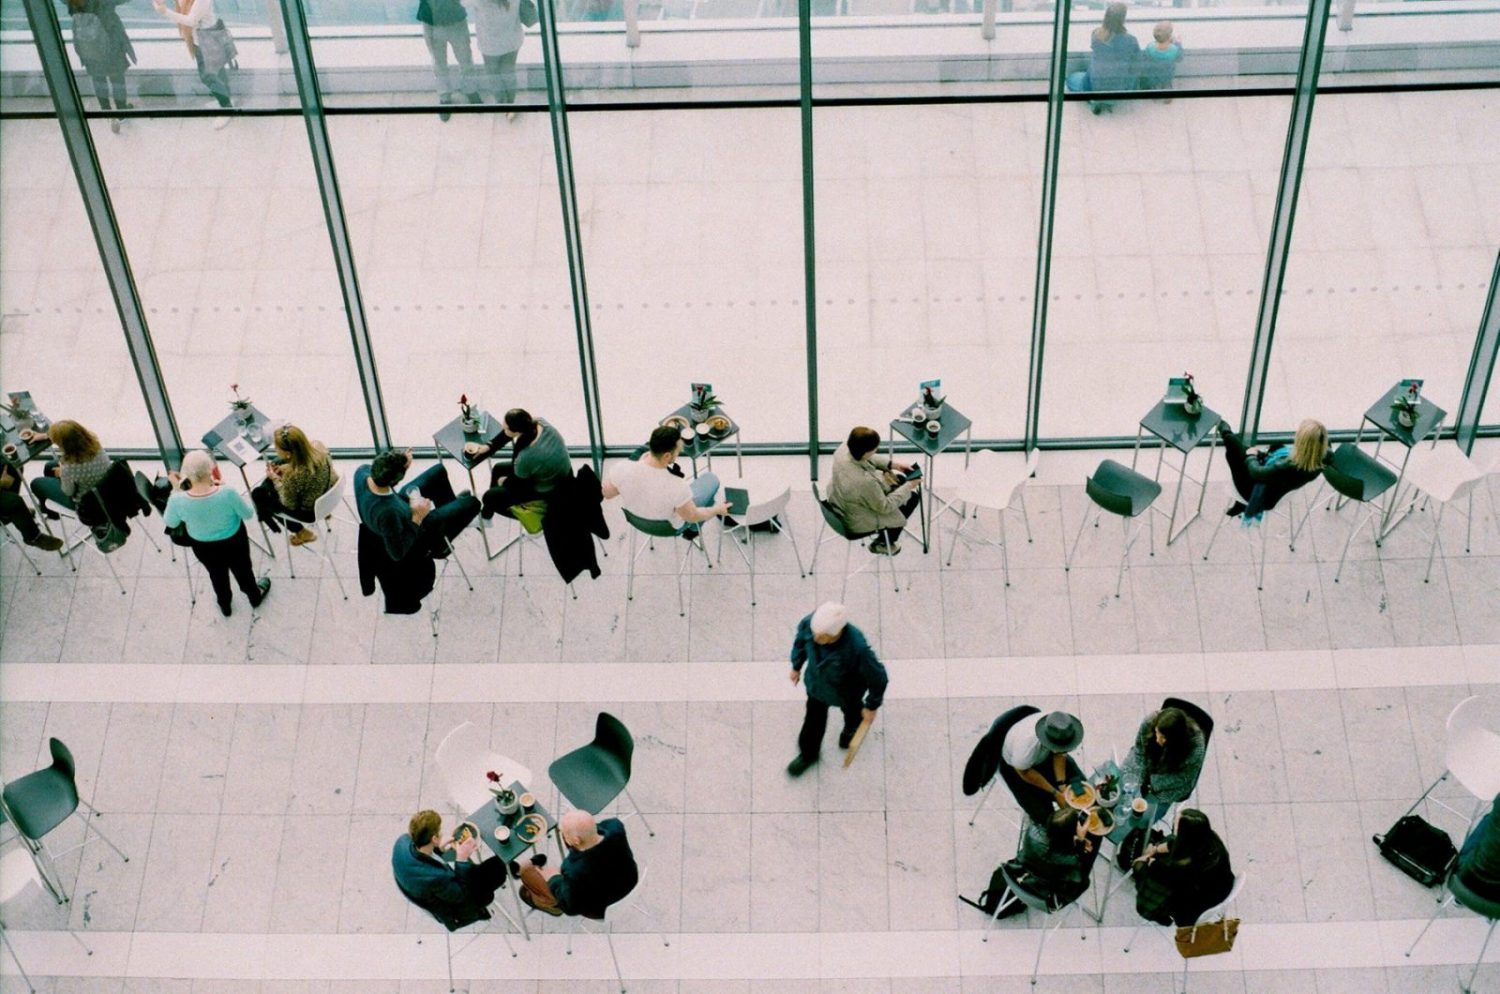 People in meetings from above